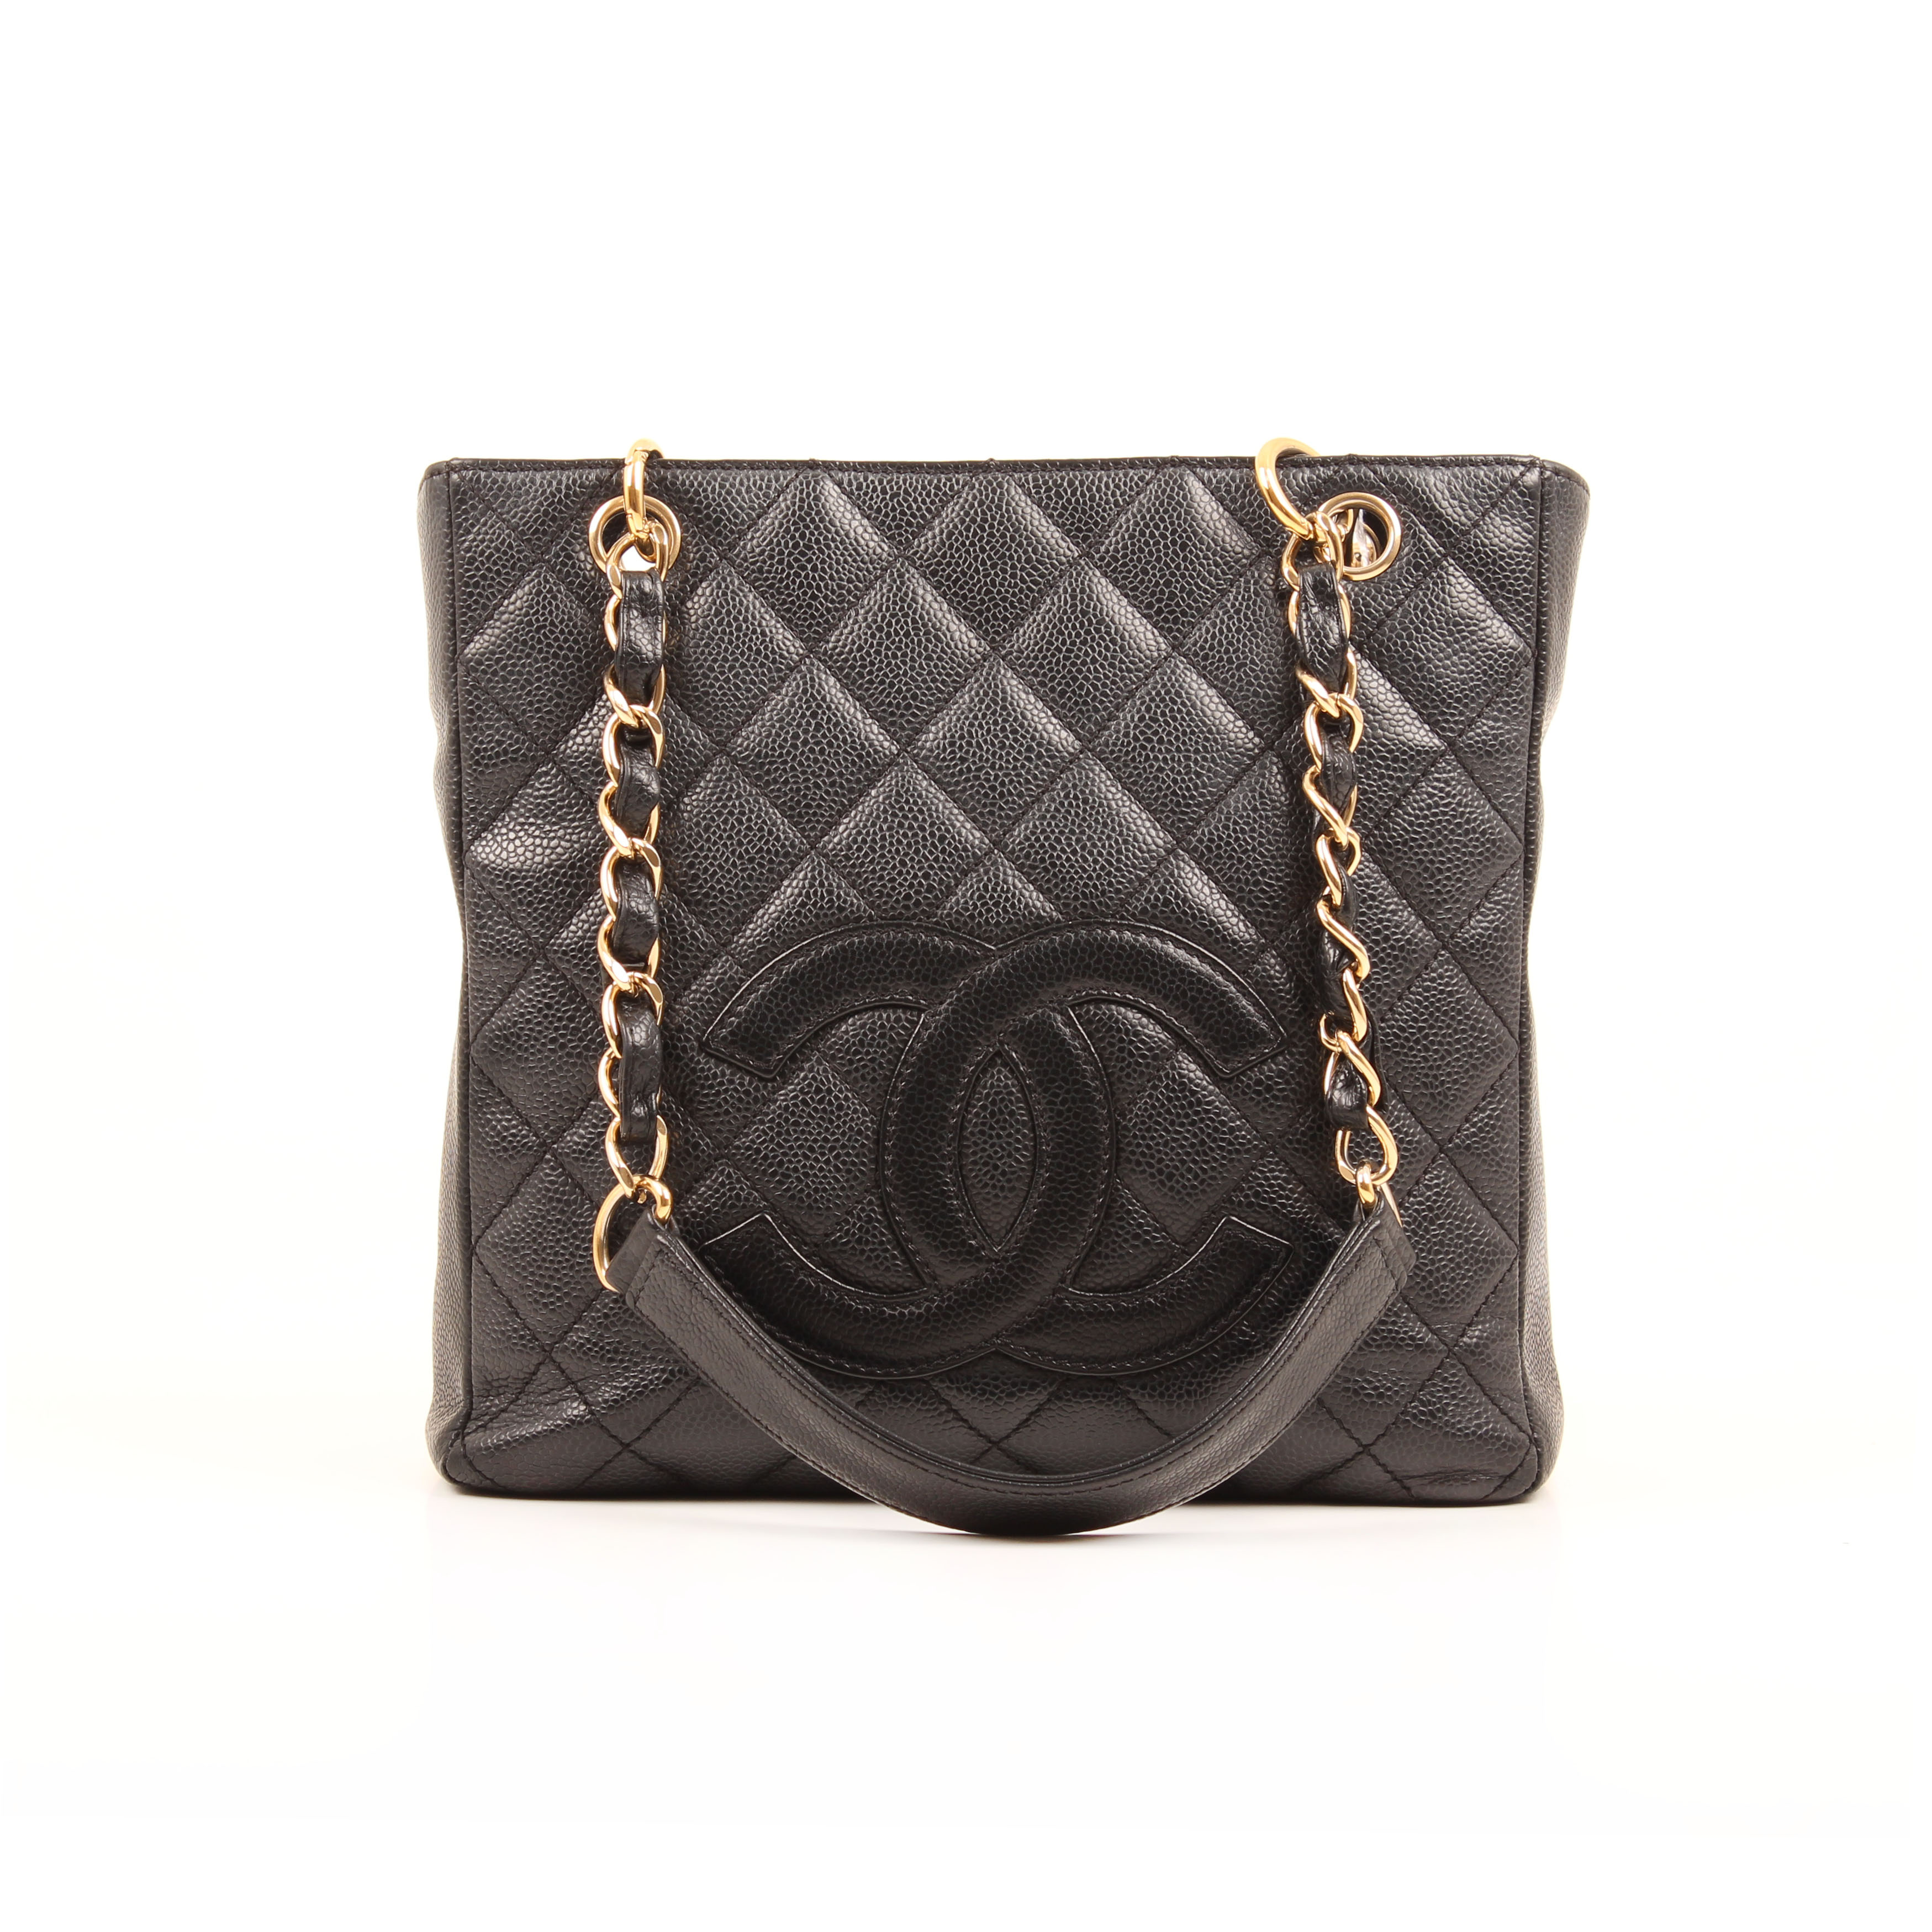 bolso chanel shopper tote mini piel caviar negro frontal